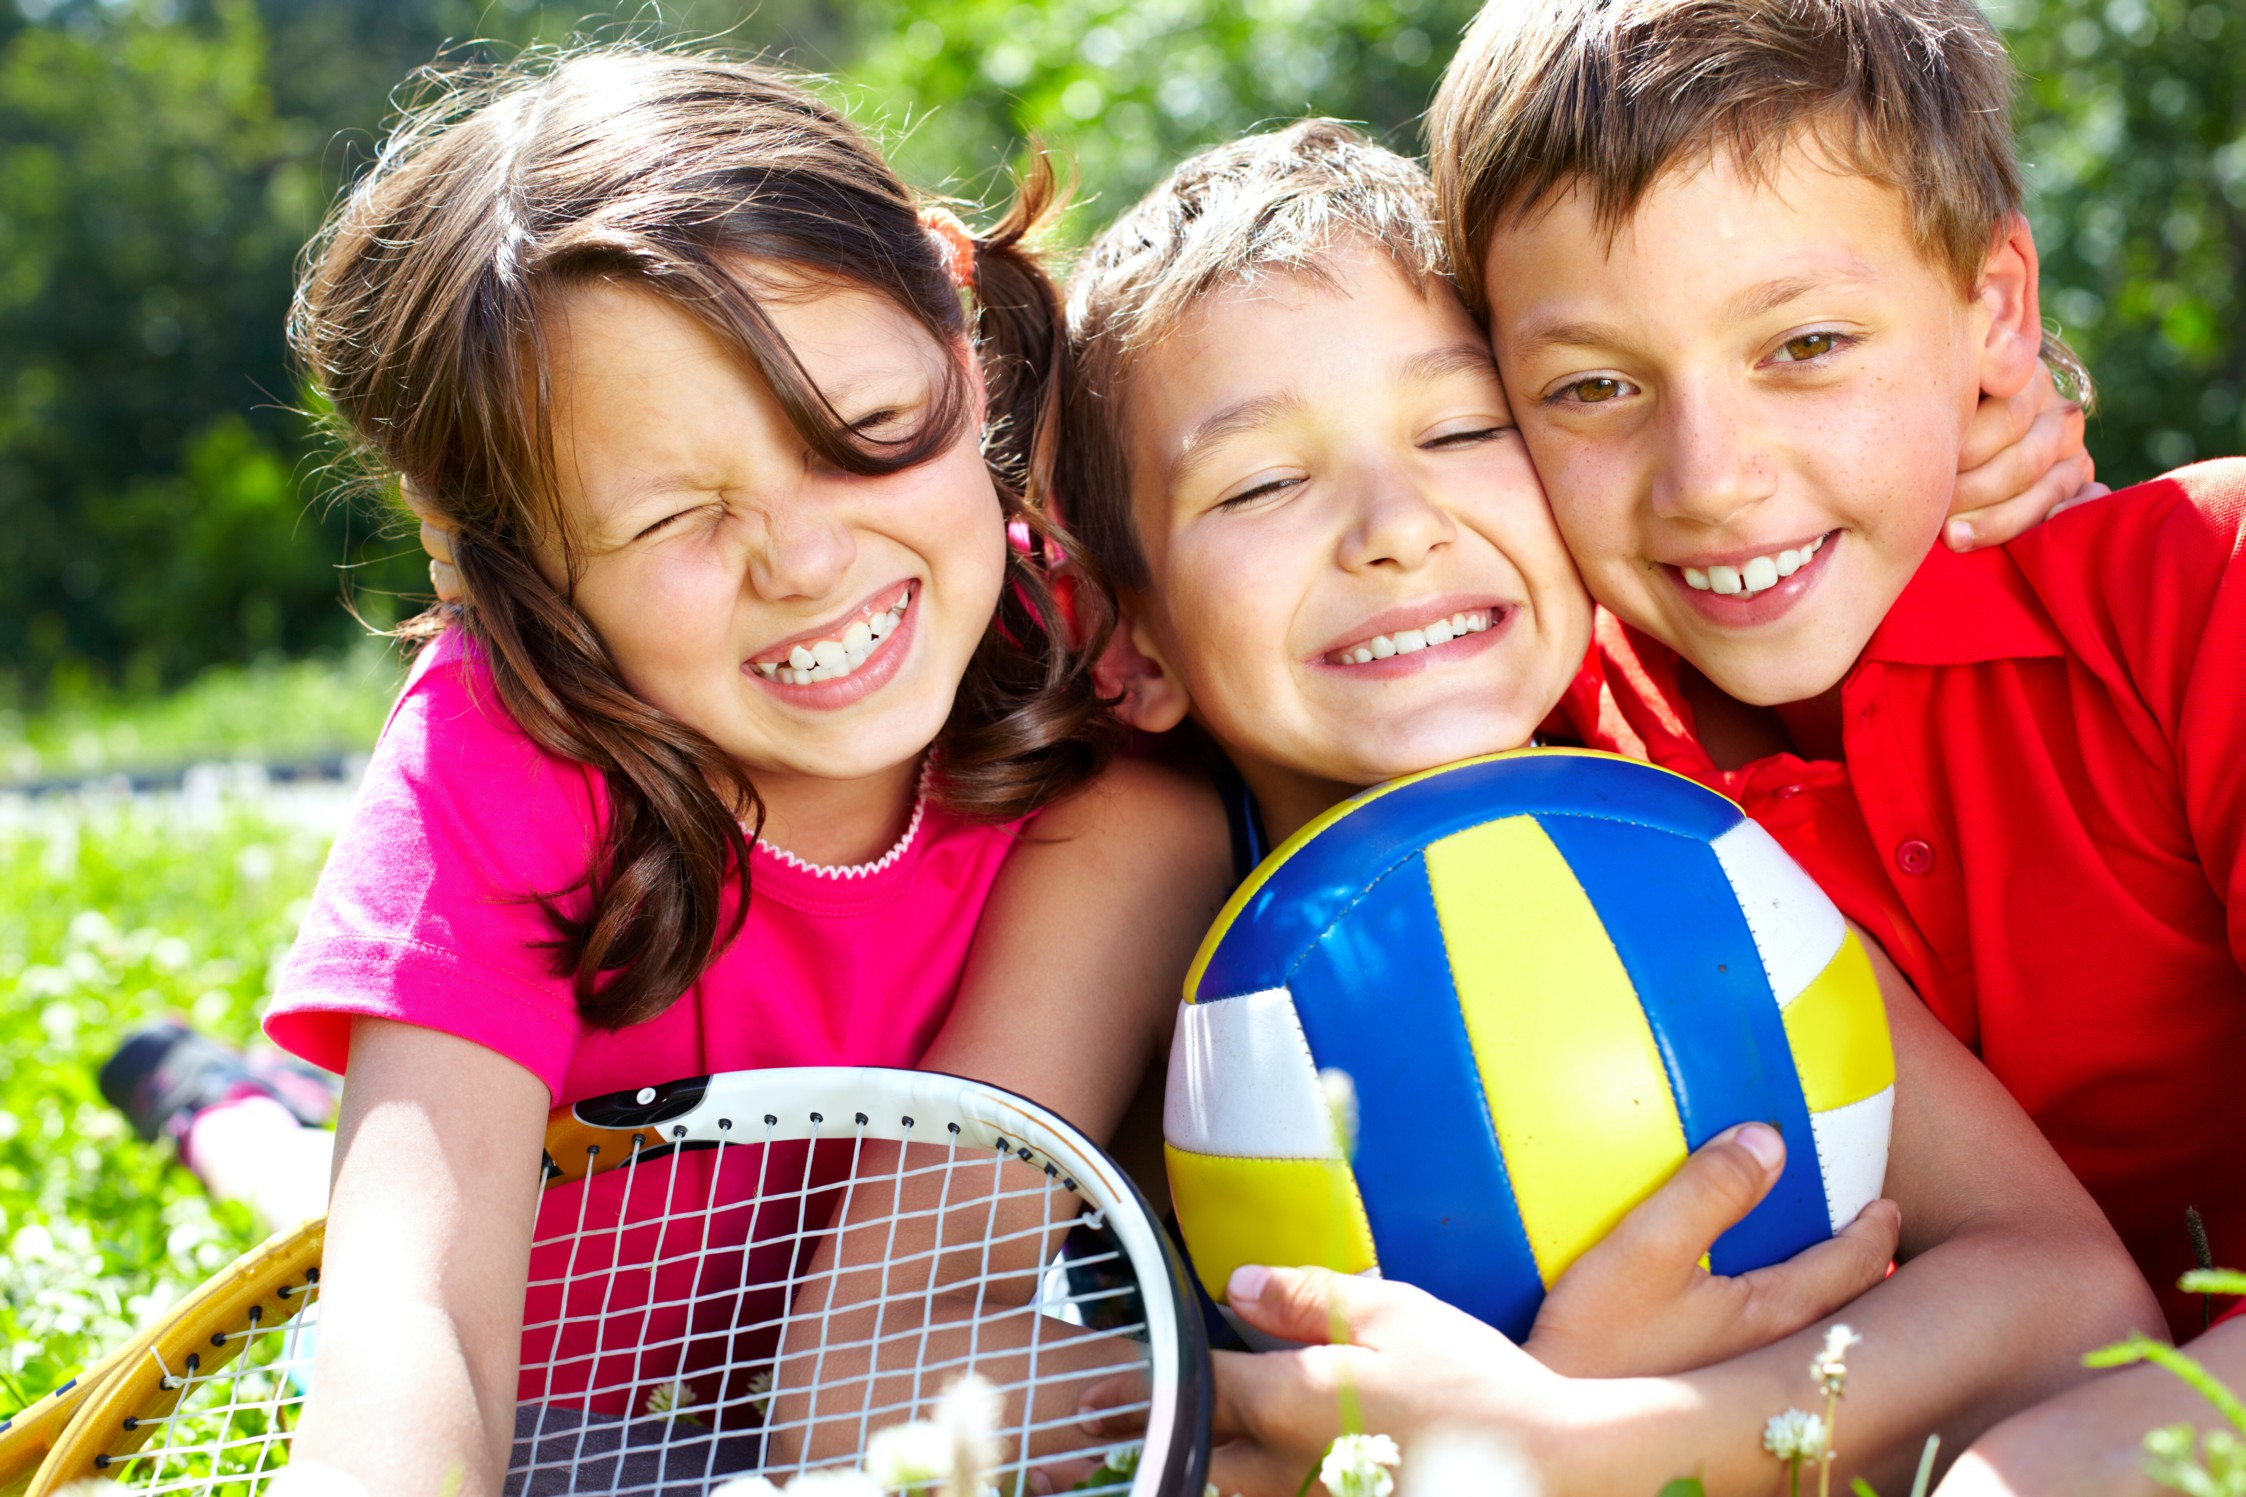 Summer Camp at Crunch Fitness Westmanstown - Crunch Fitness